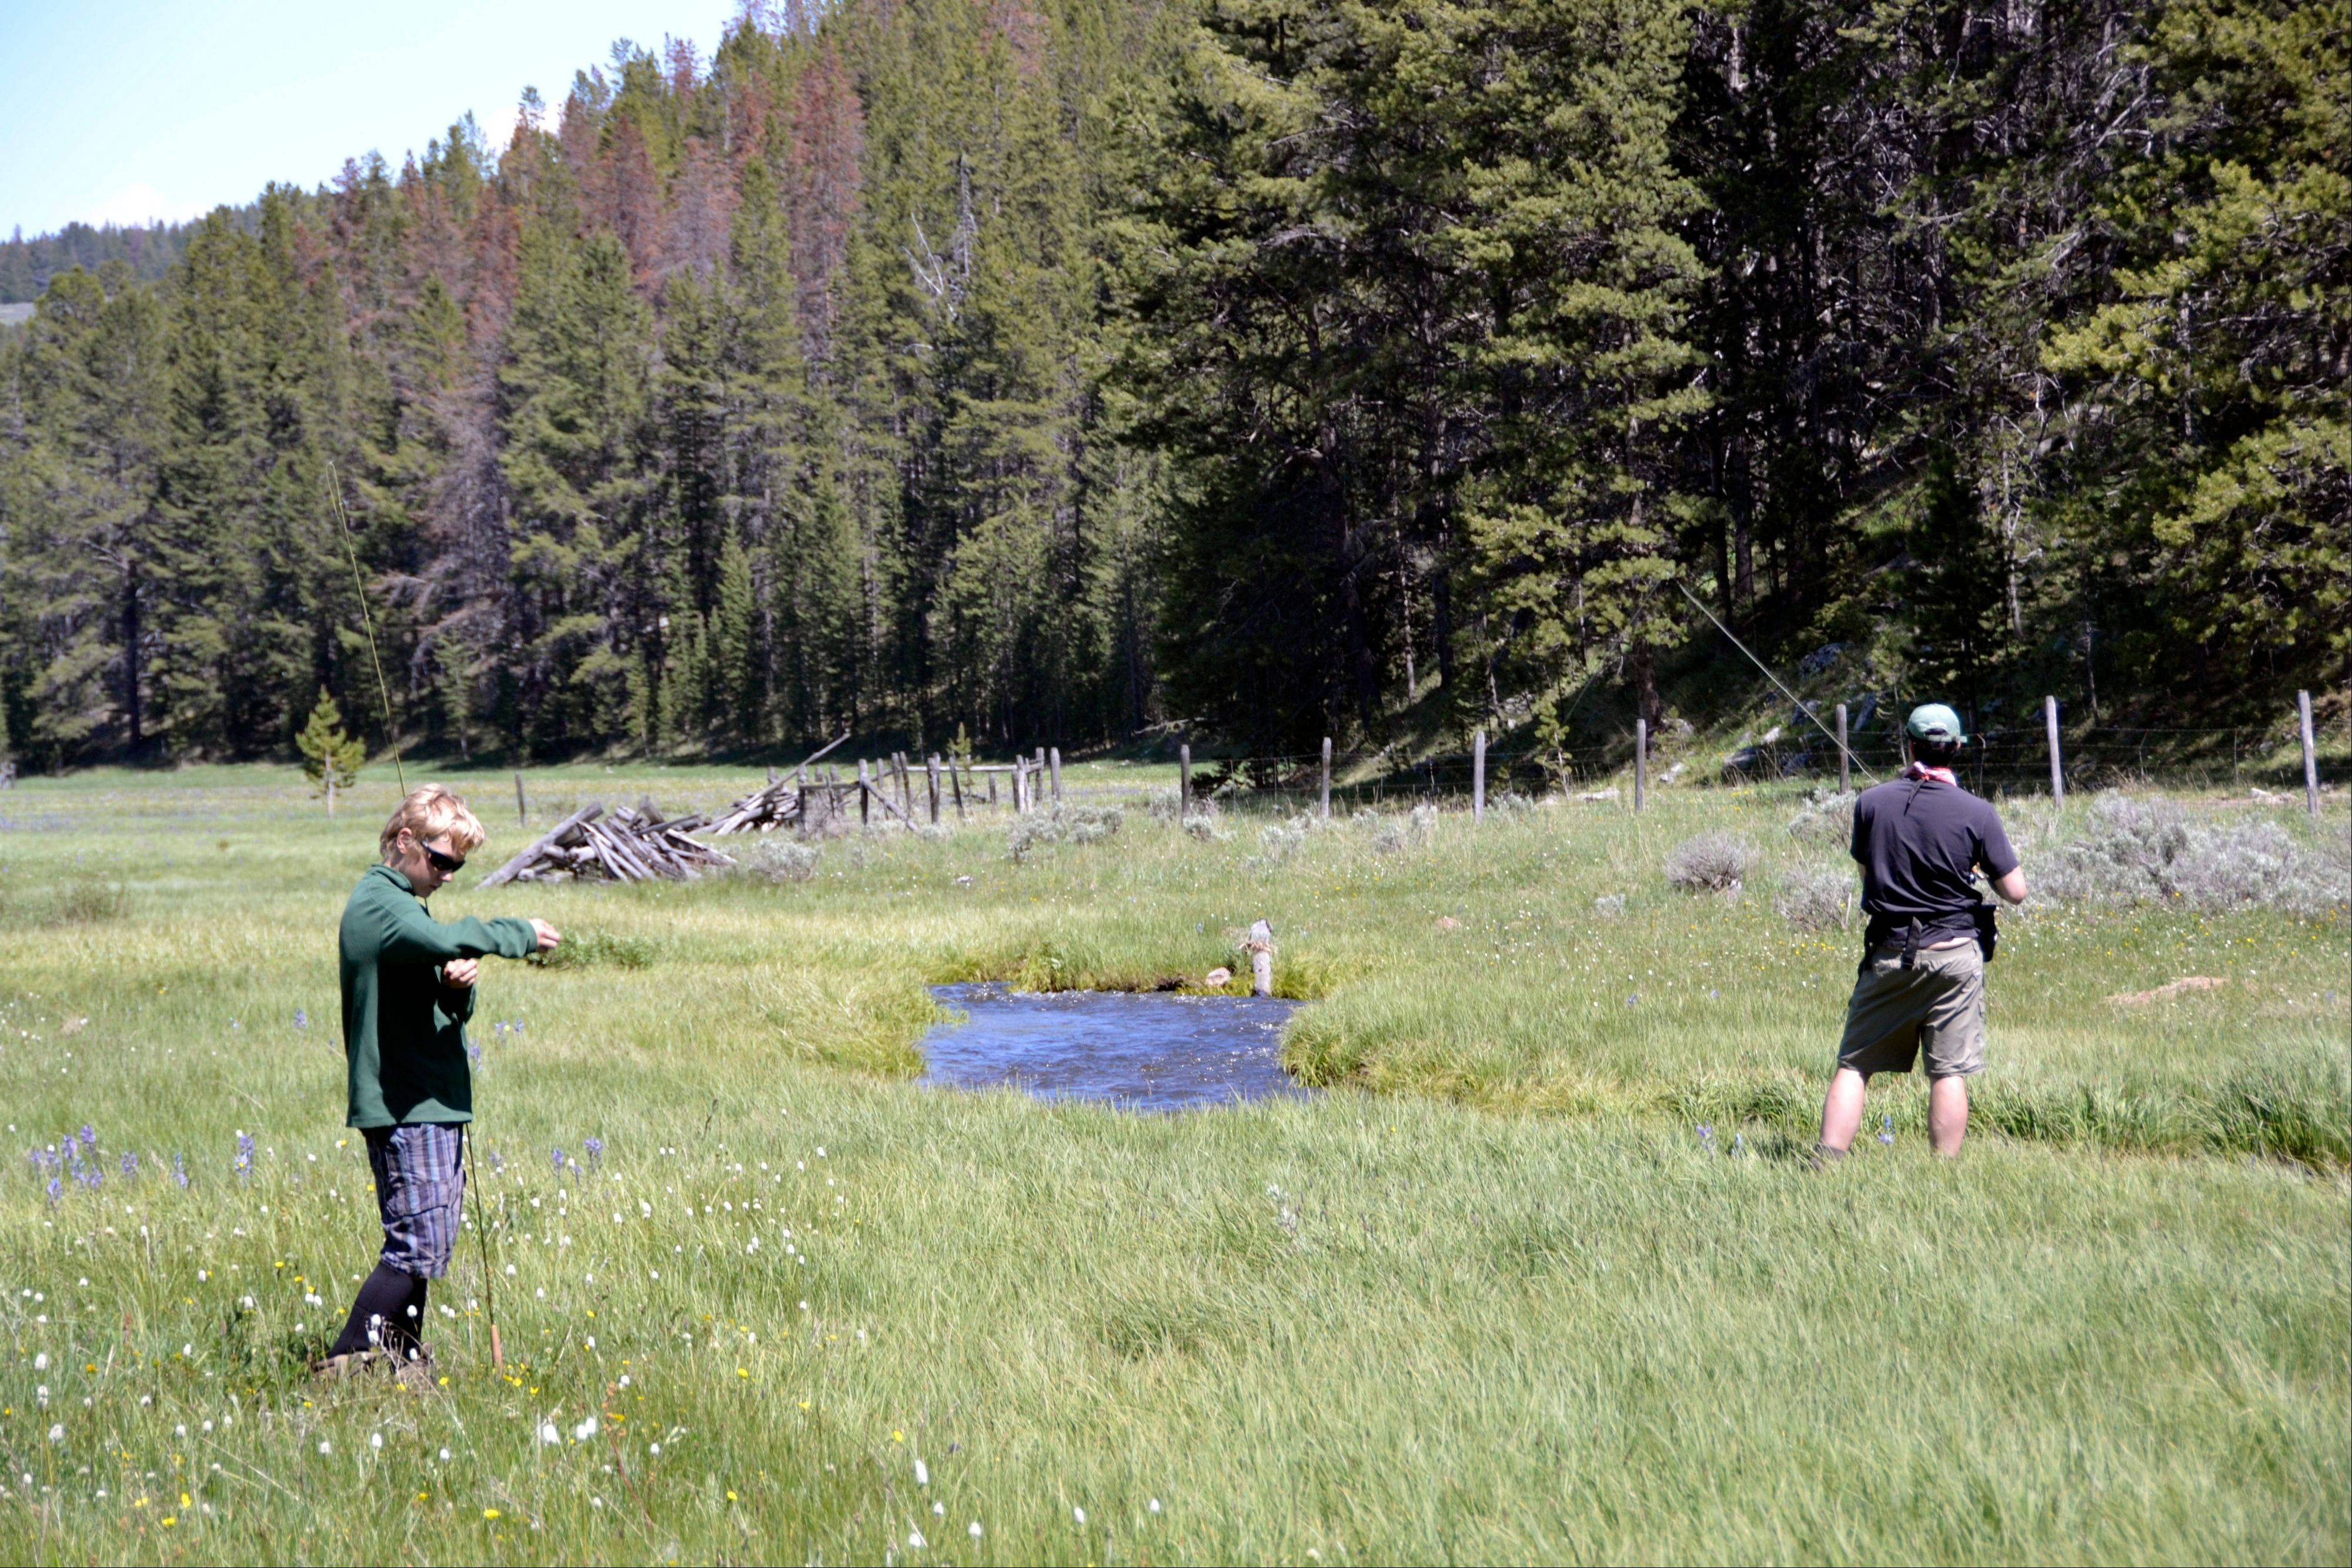 Desmond, right, and Evan Butler fish the Selway Fork of Bloody Dick Creek near Dillon, Mont. The creek's lazy current winds through an open meadow.